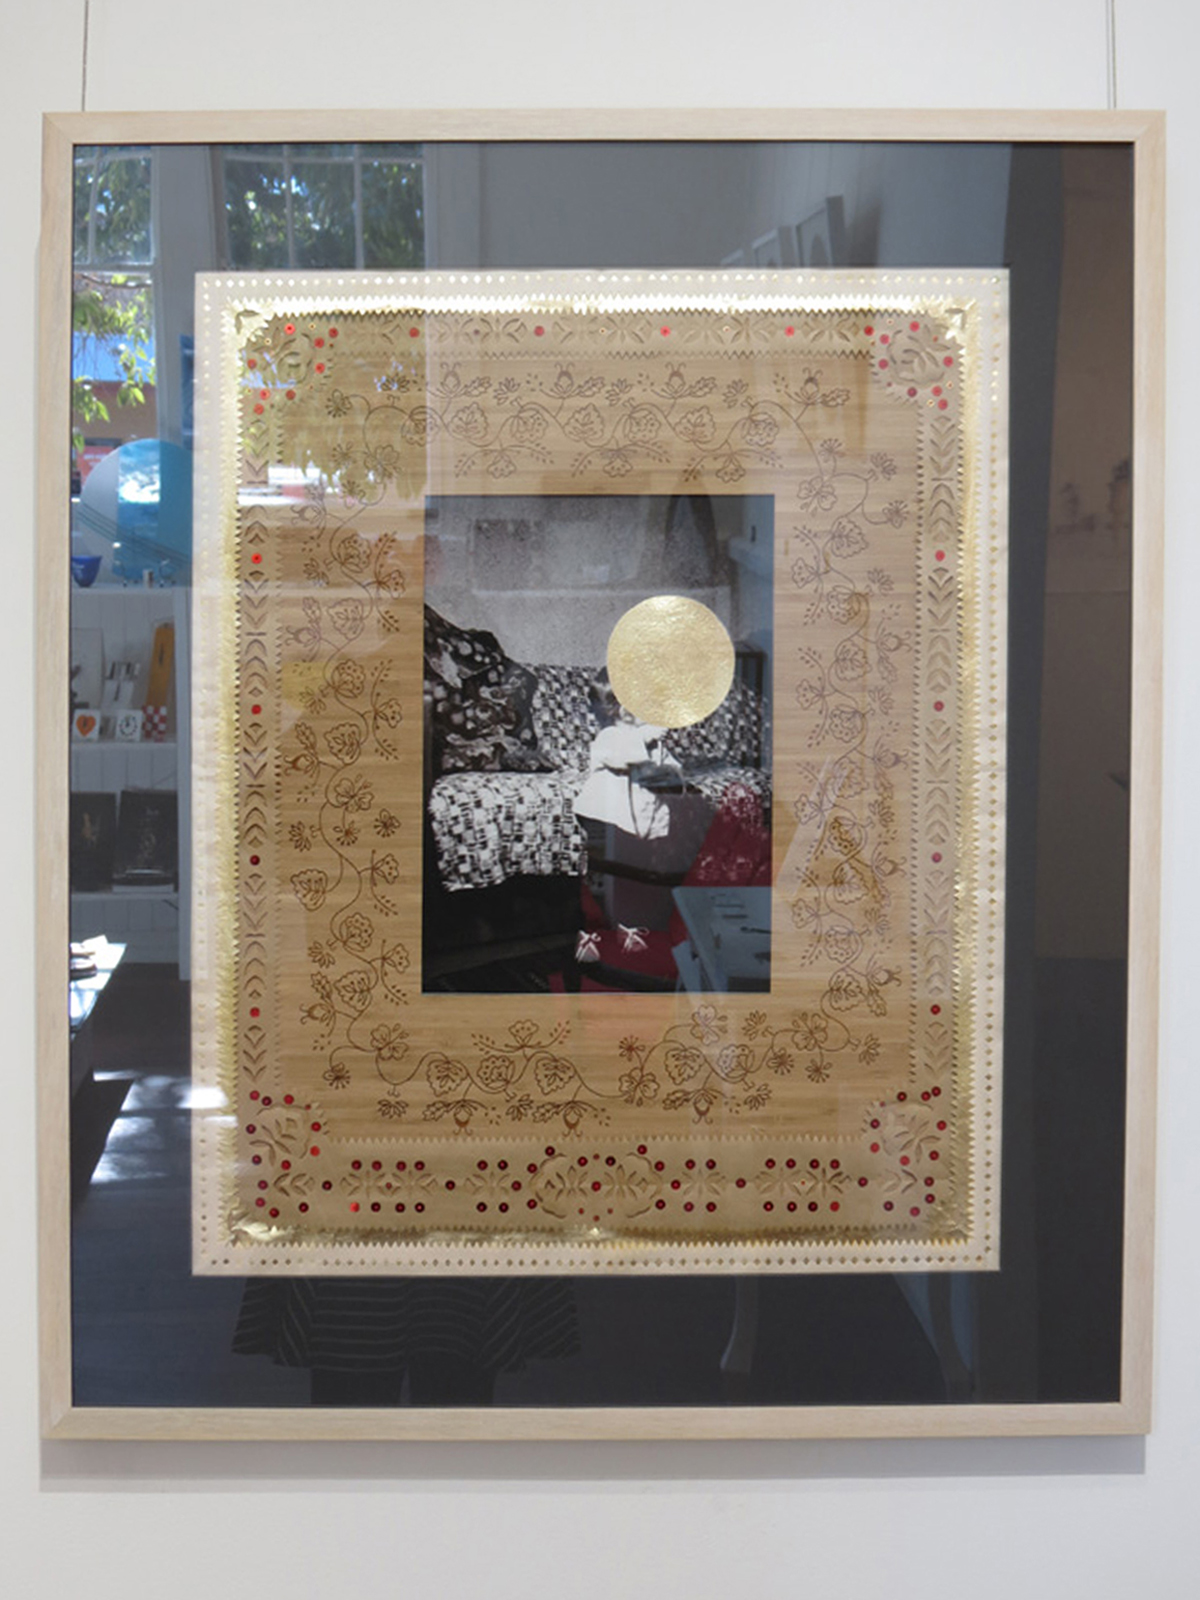 3.  The Original Place - Family Album 1 , Elisa Markes-Young, paper and mixed media, $1100